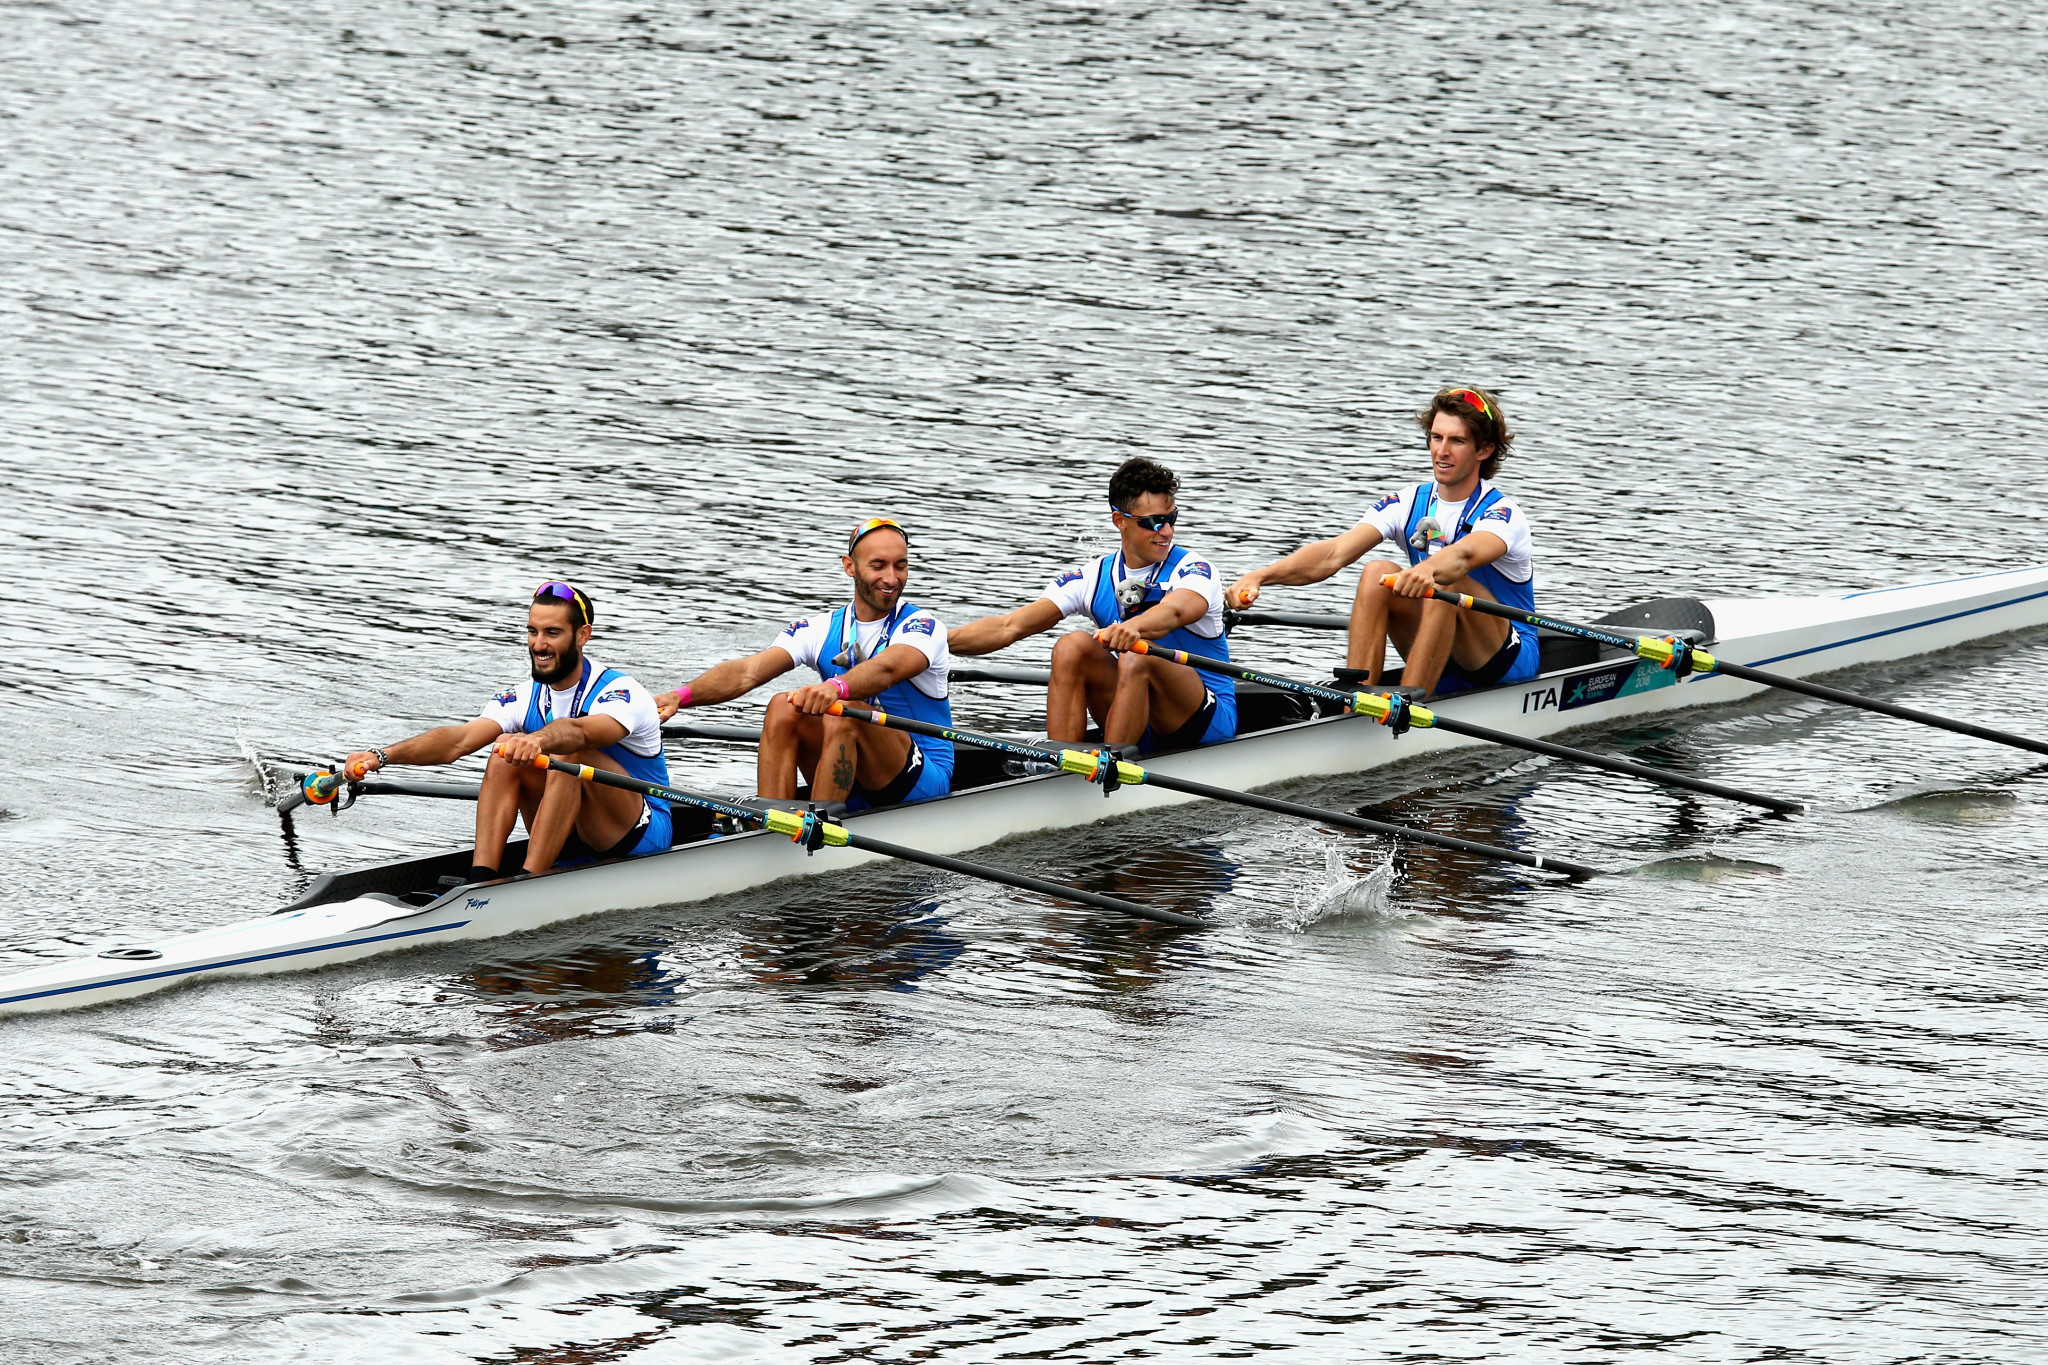 Italy's lightweight men's quadruple sculls crew earned a dominant victory ©Getty Images